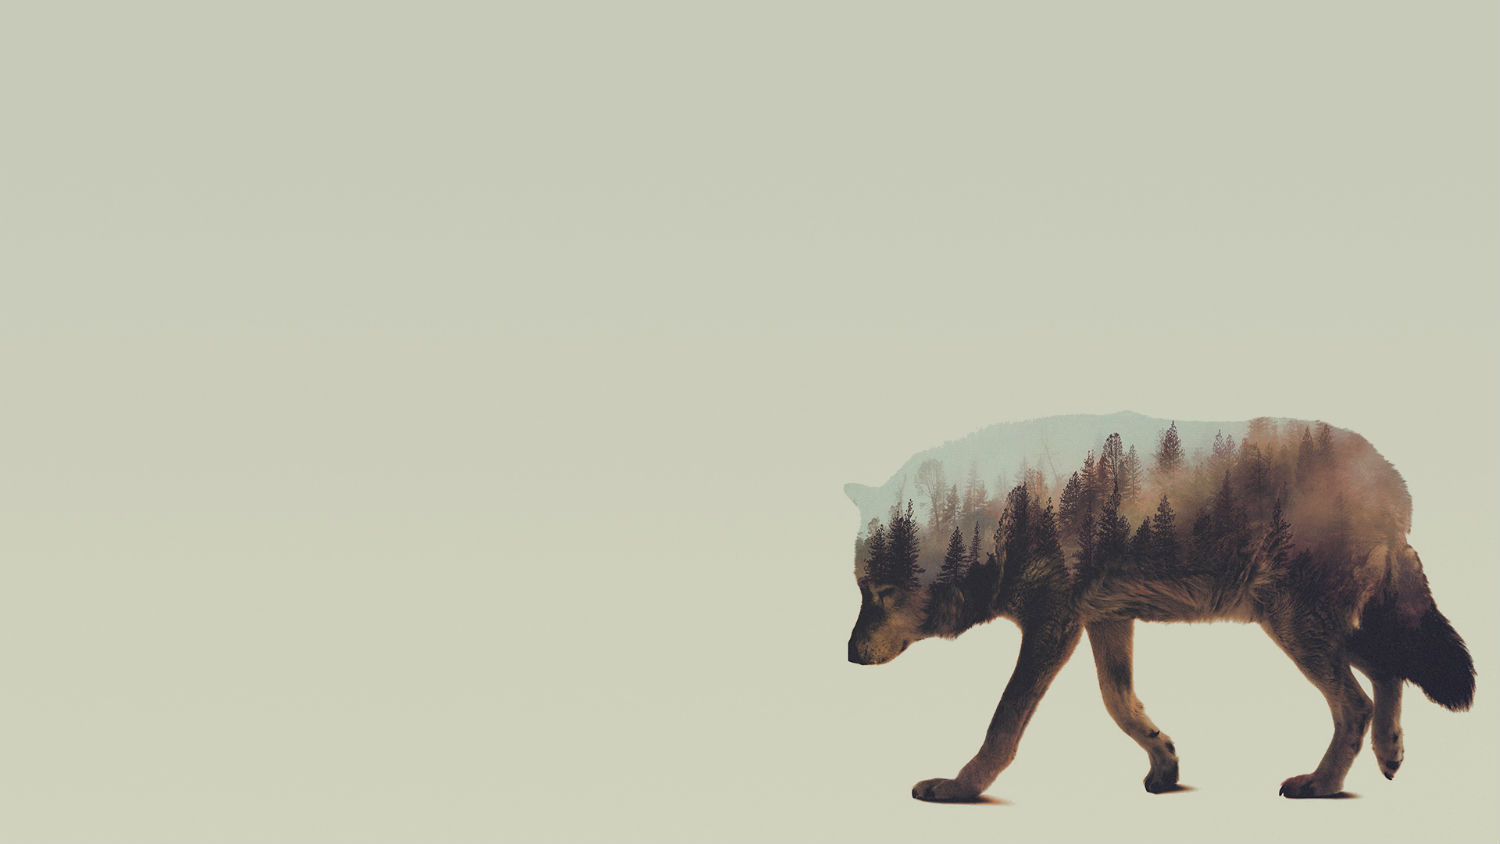 andreas lie double exposure animals wolf